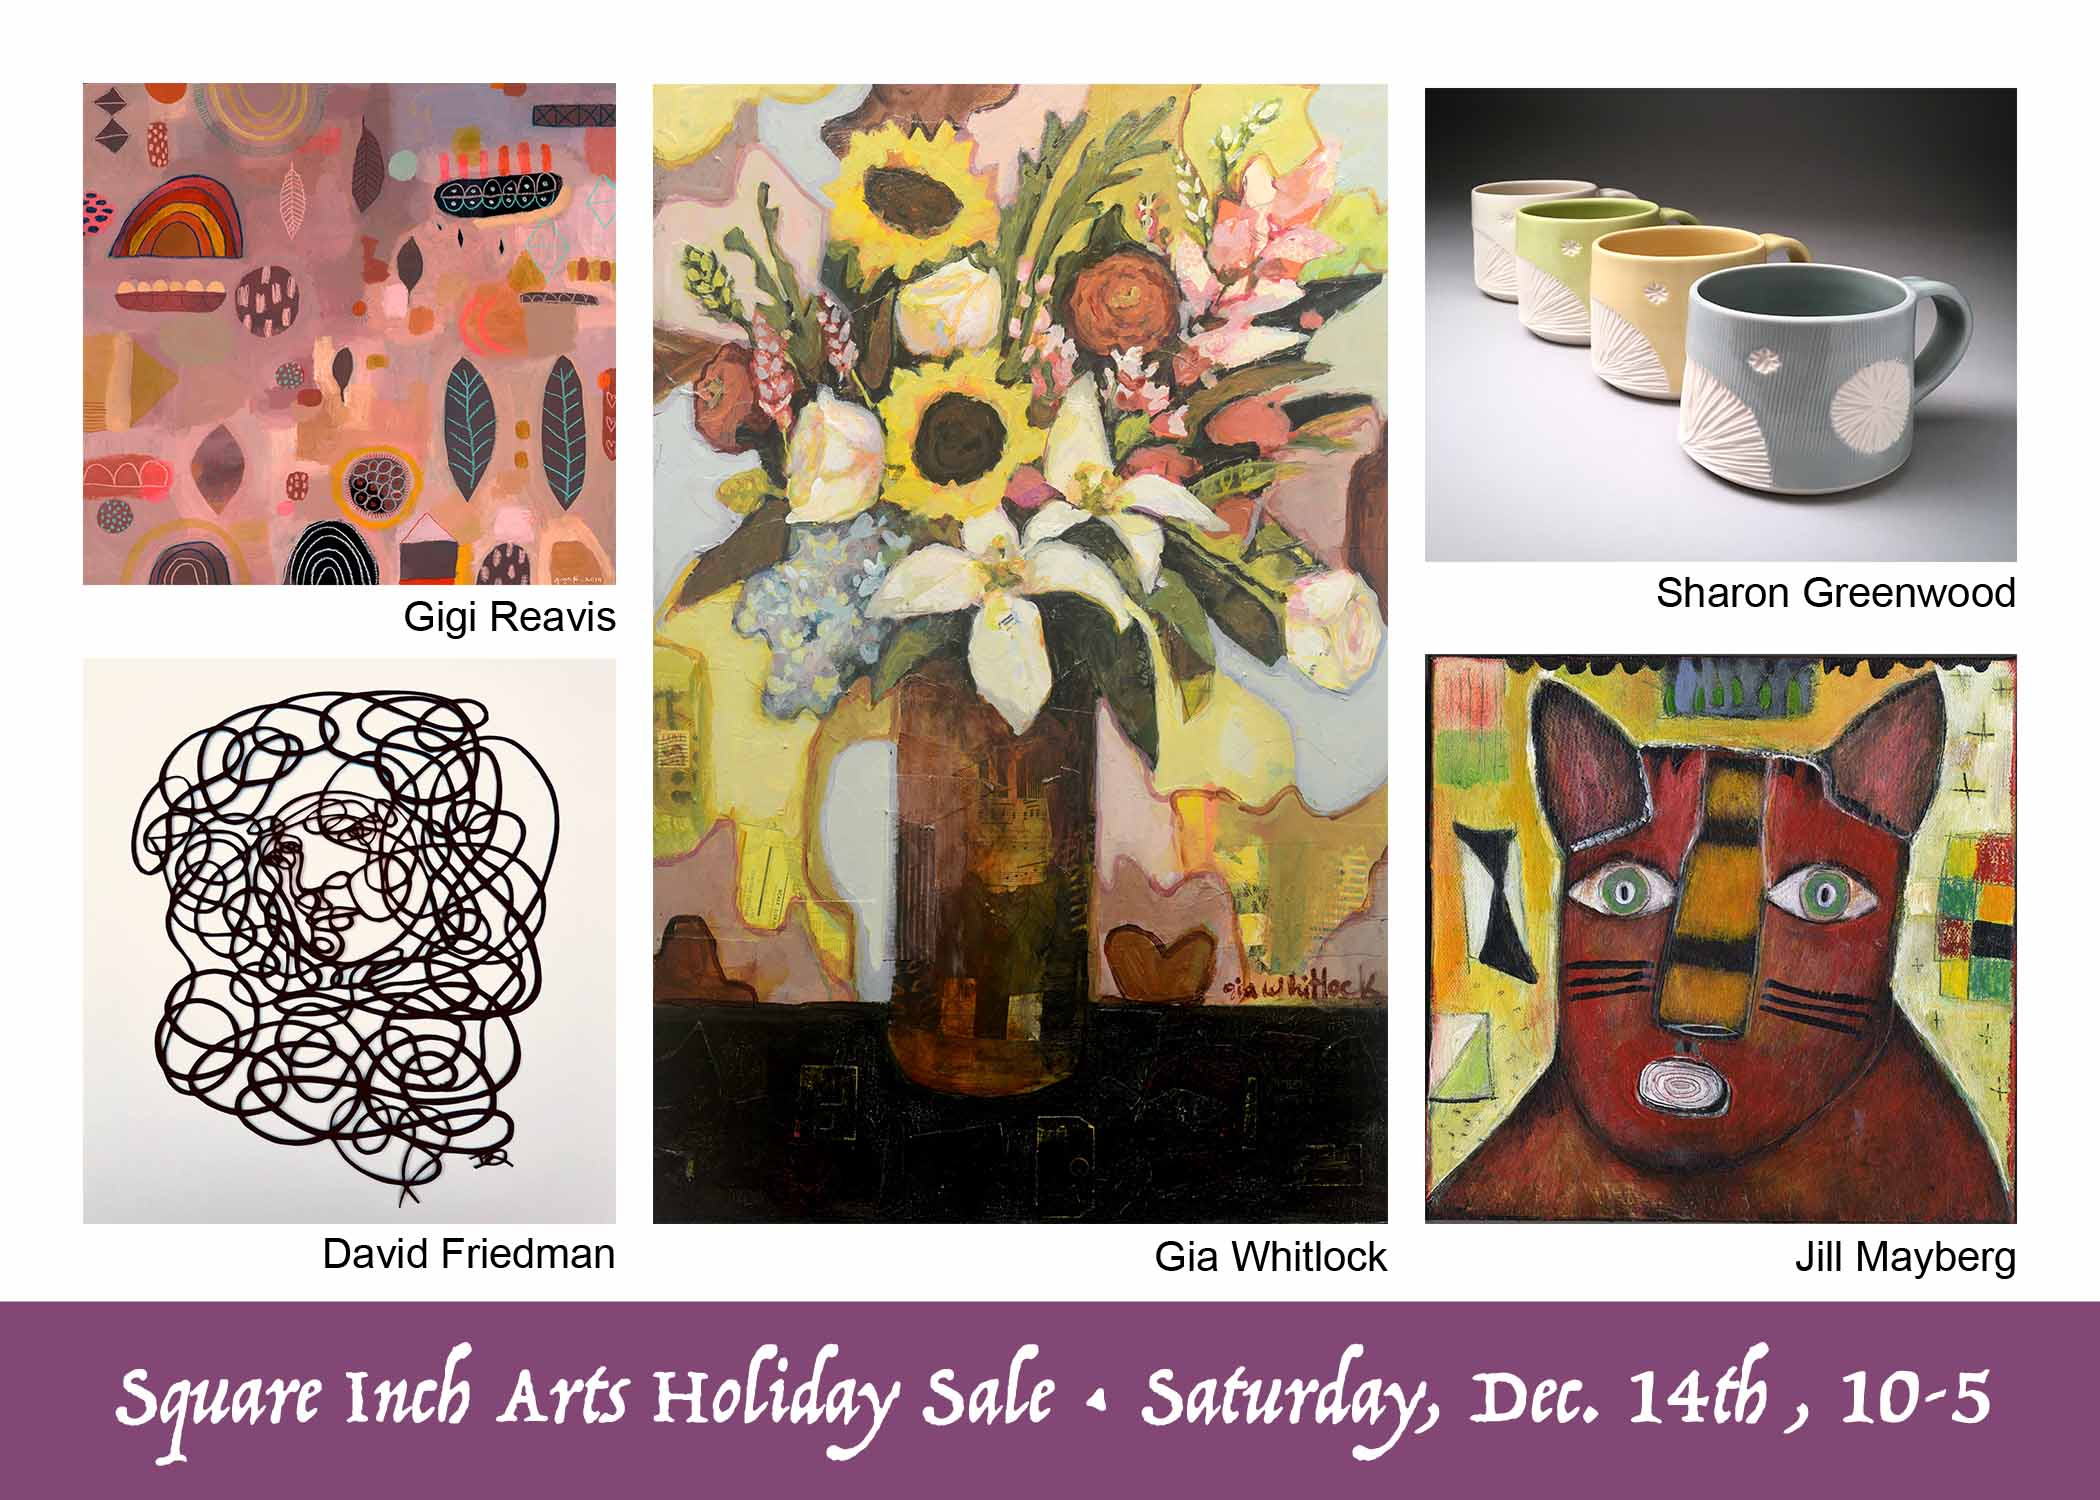 Square Inch Arts Holiday Sale